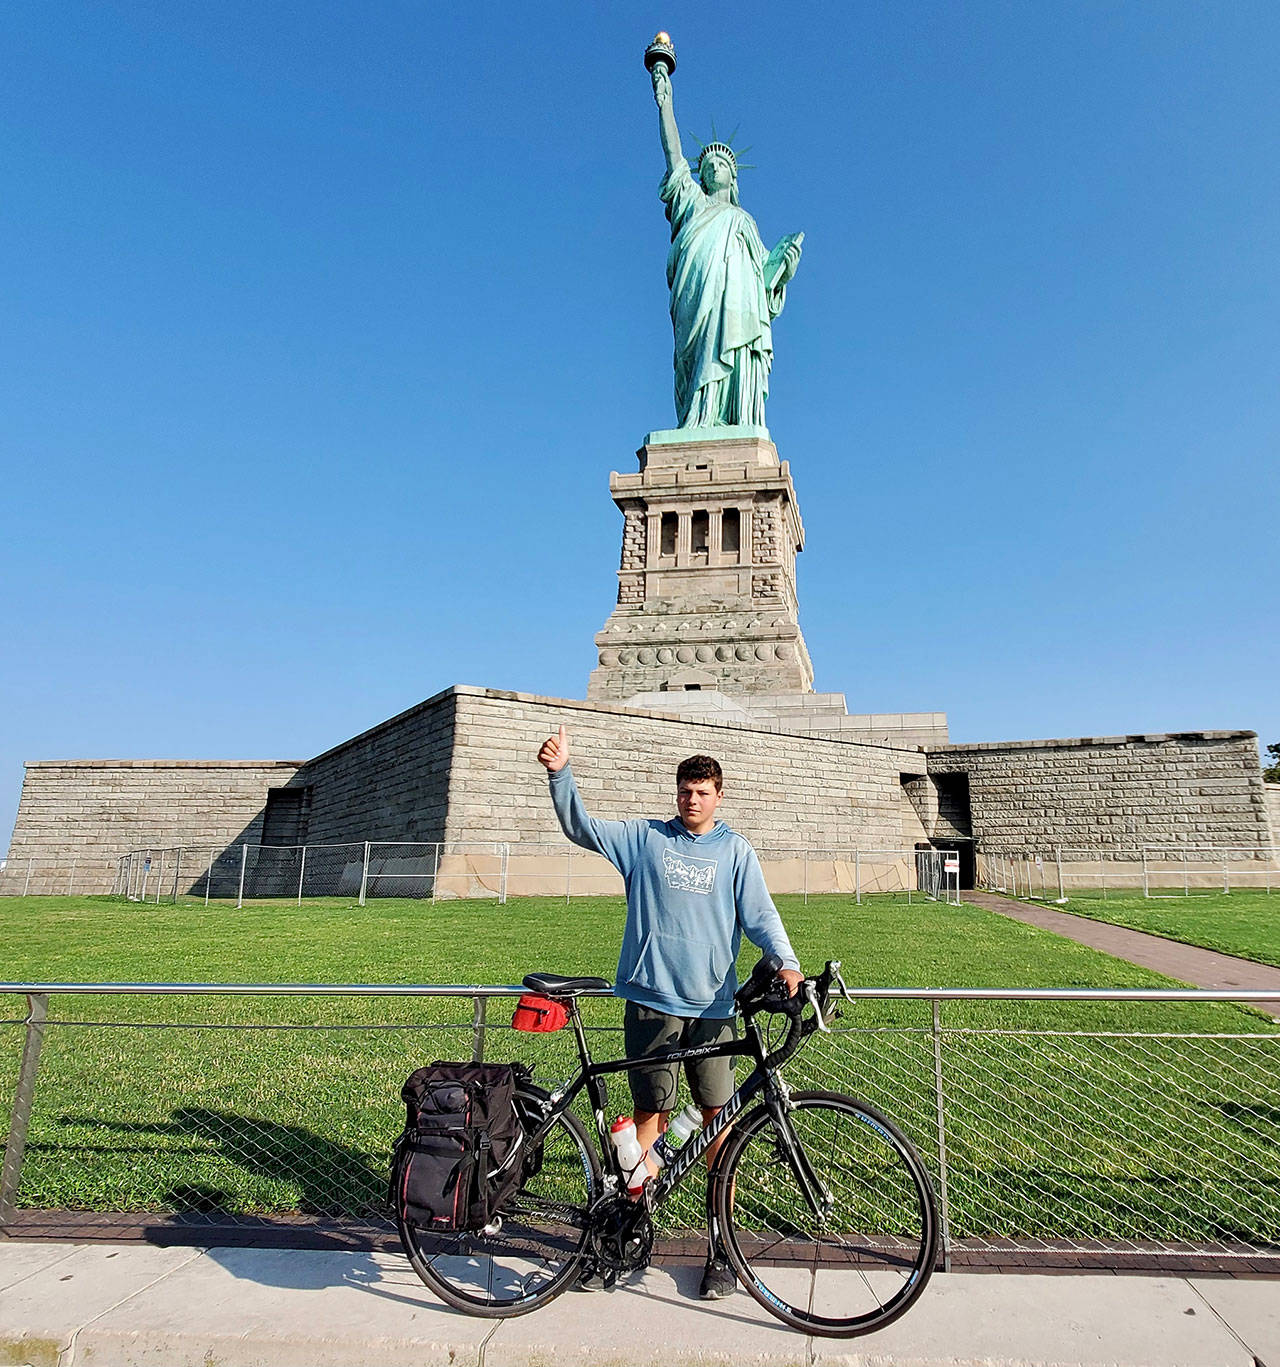 Deven Boyce, 14, rode his bike more than 3,000 miles from the Mukilteo Lighthouse to the Statue of Liberty. (Submitted photo)